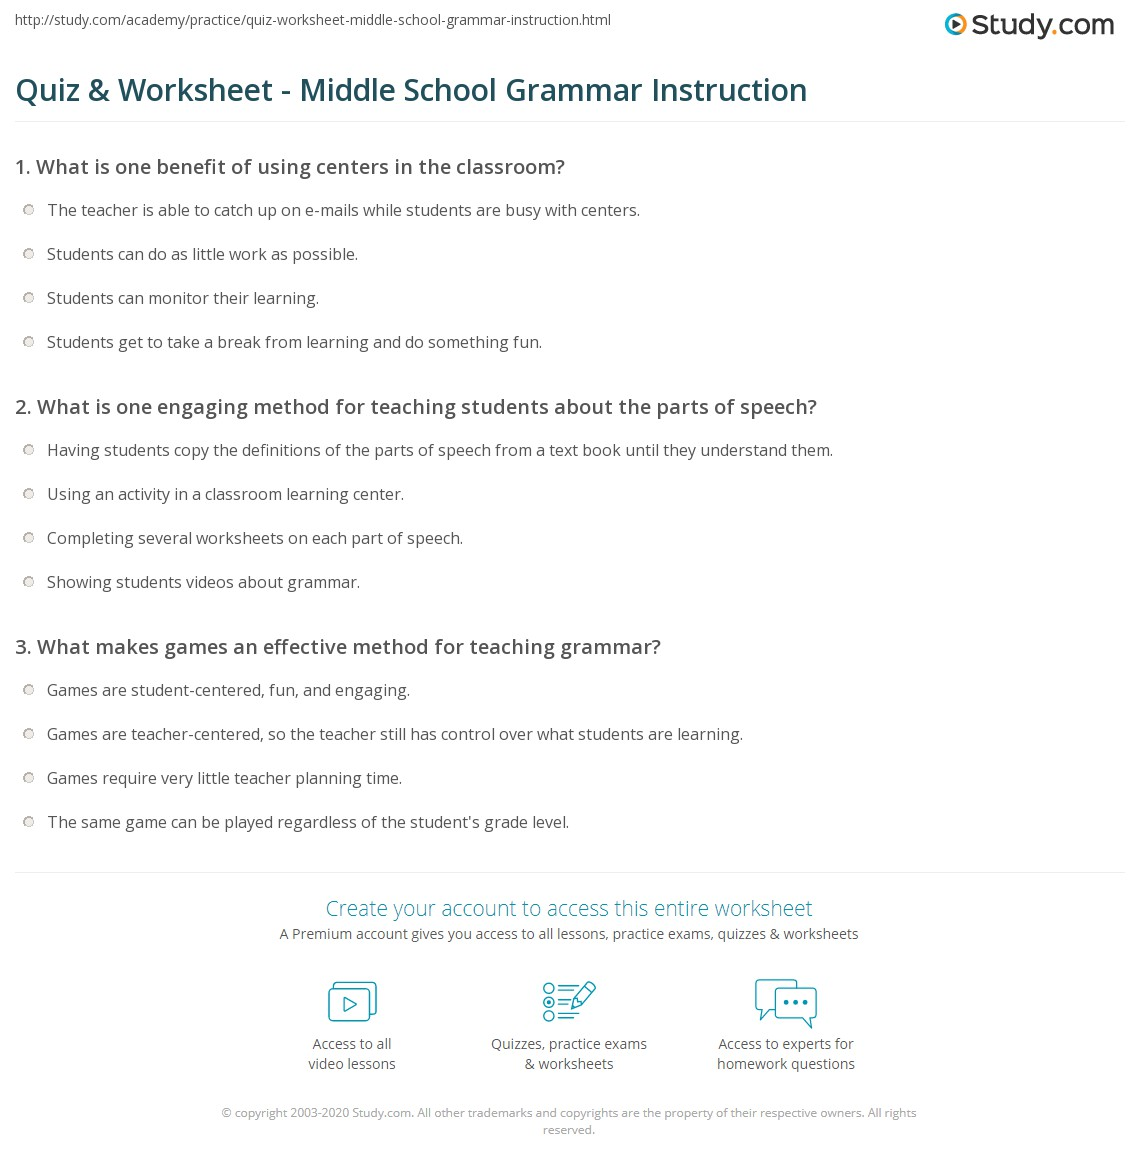 Worksheet Grammar Worksheet Middle School quiz worksheet middle school grammar instruction study com print teaching in worksheet